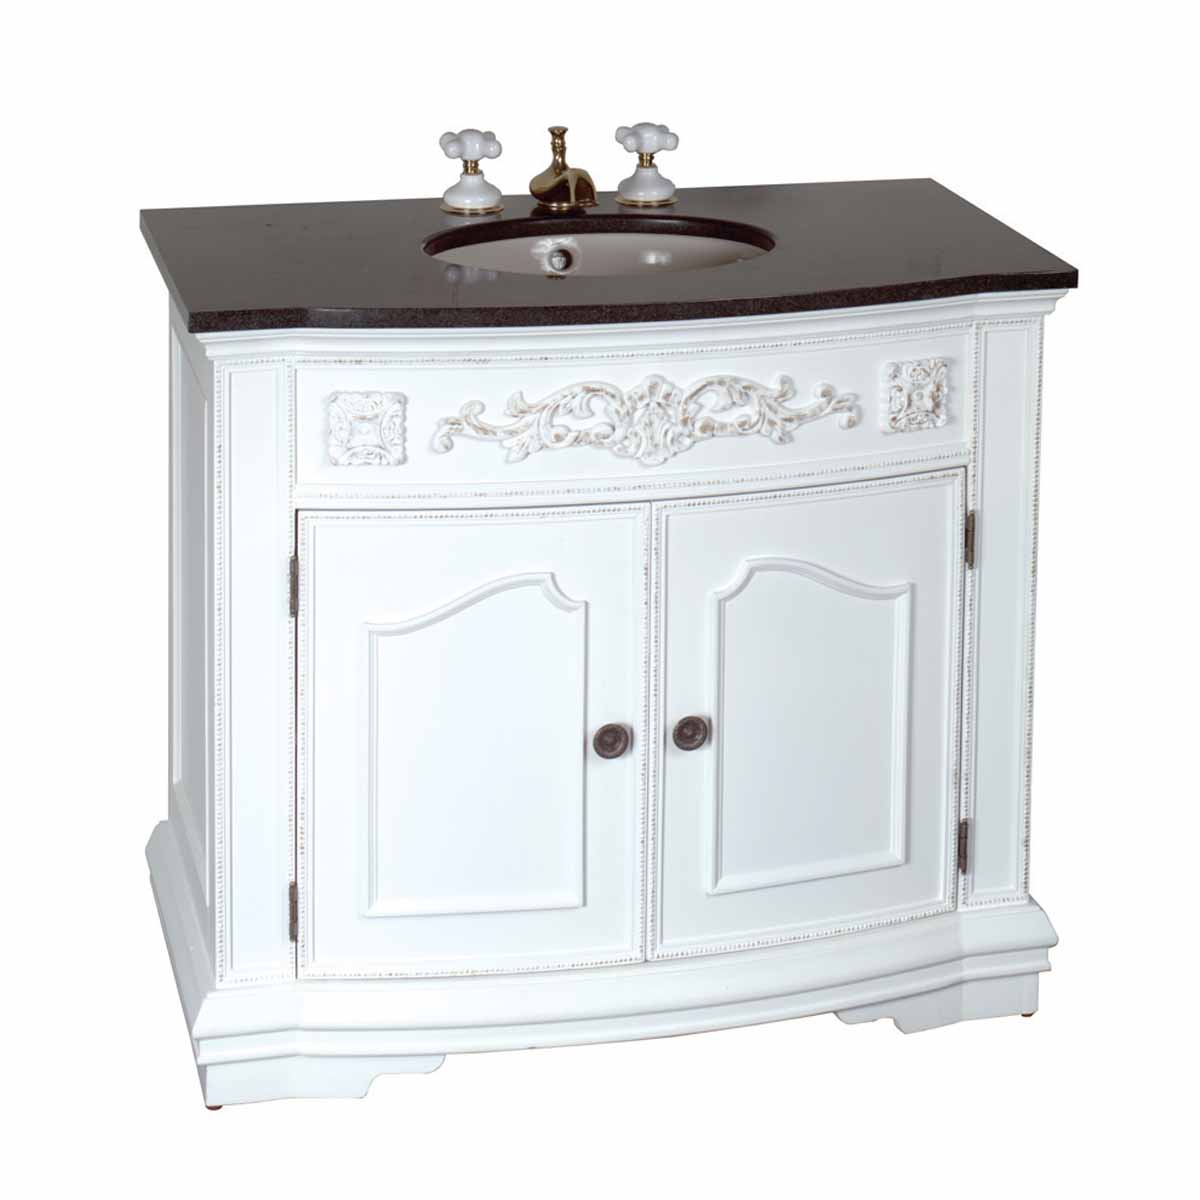 37 inch Bathroom Vanity Sink and Cabinet Marble Top